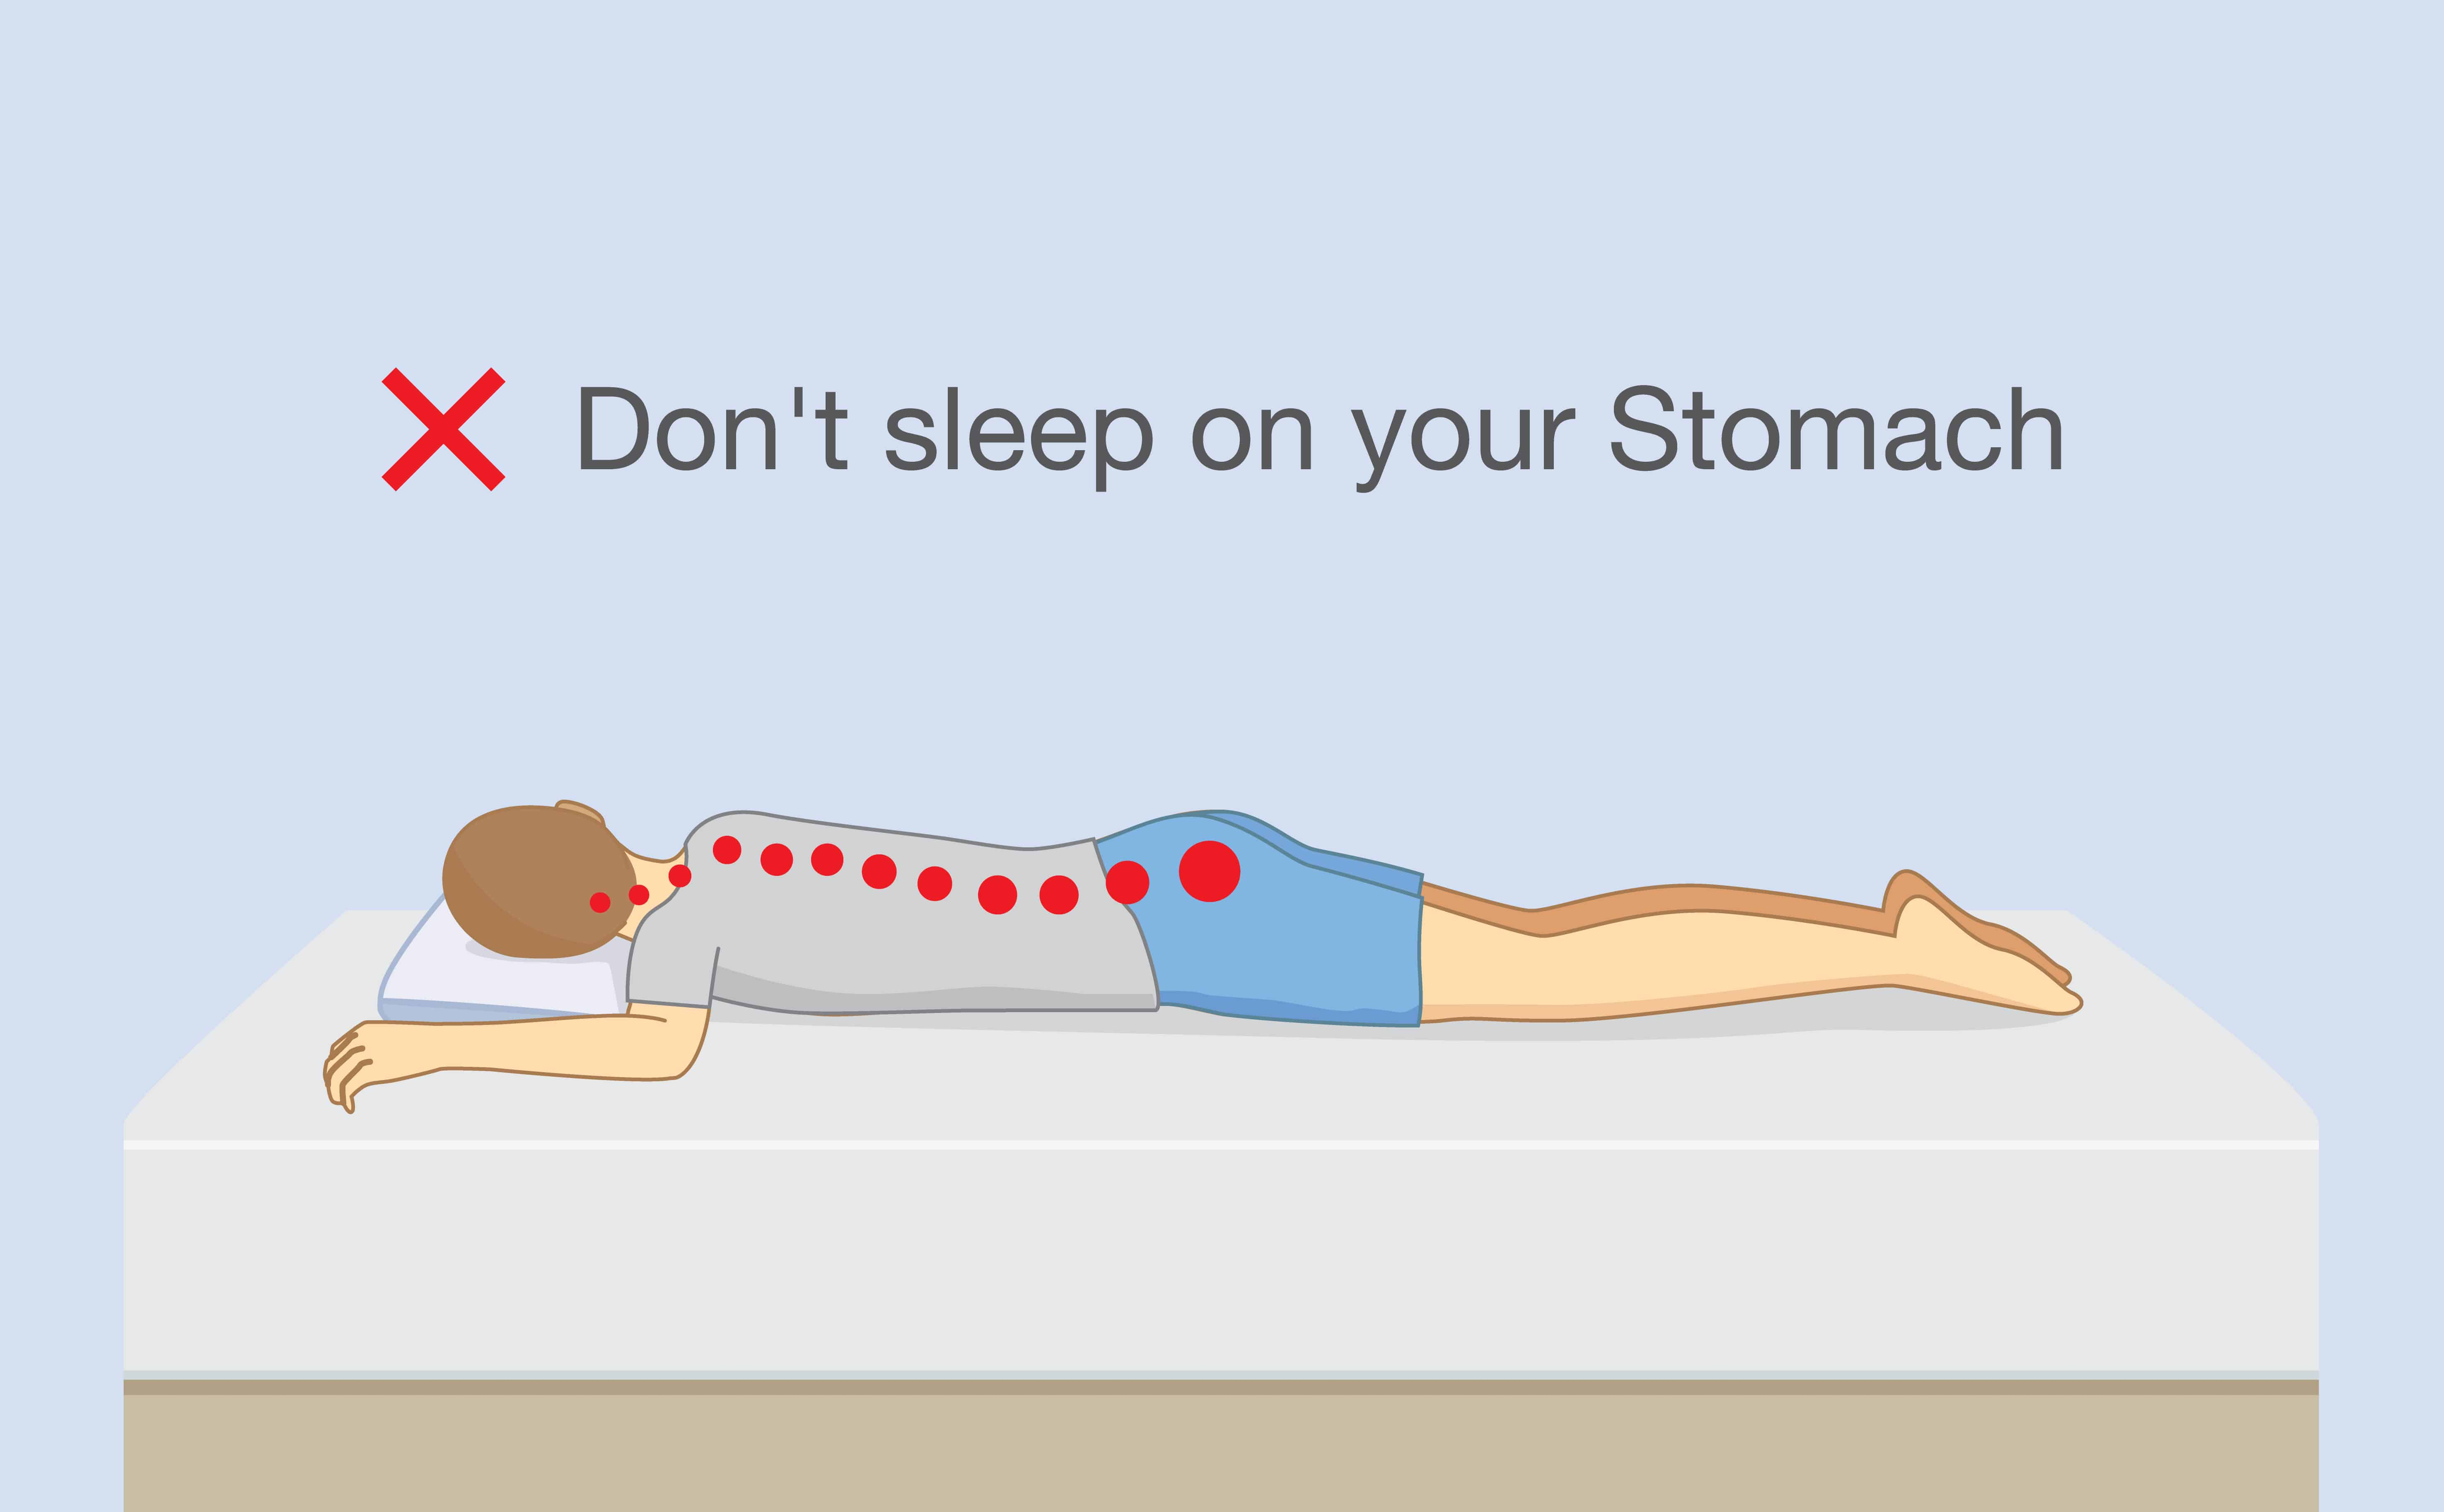 Dont sleep on your stomach